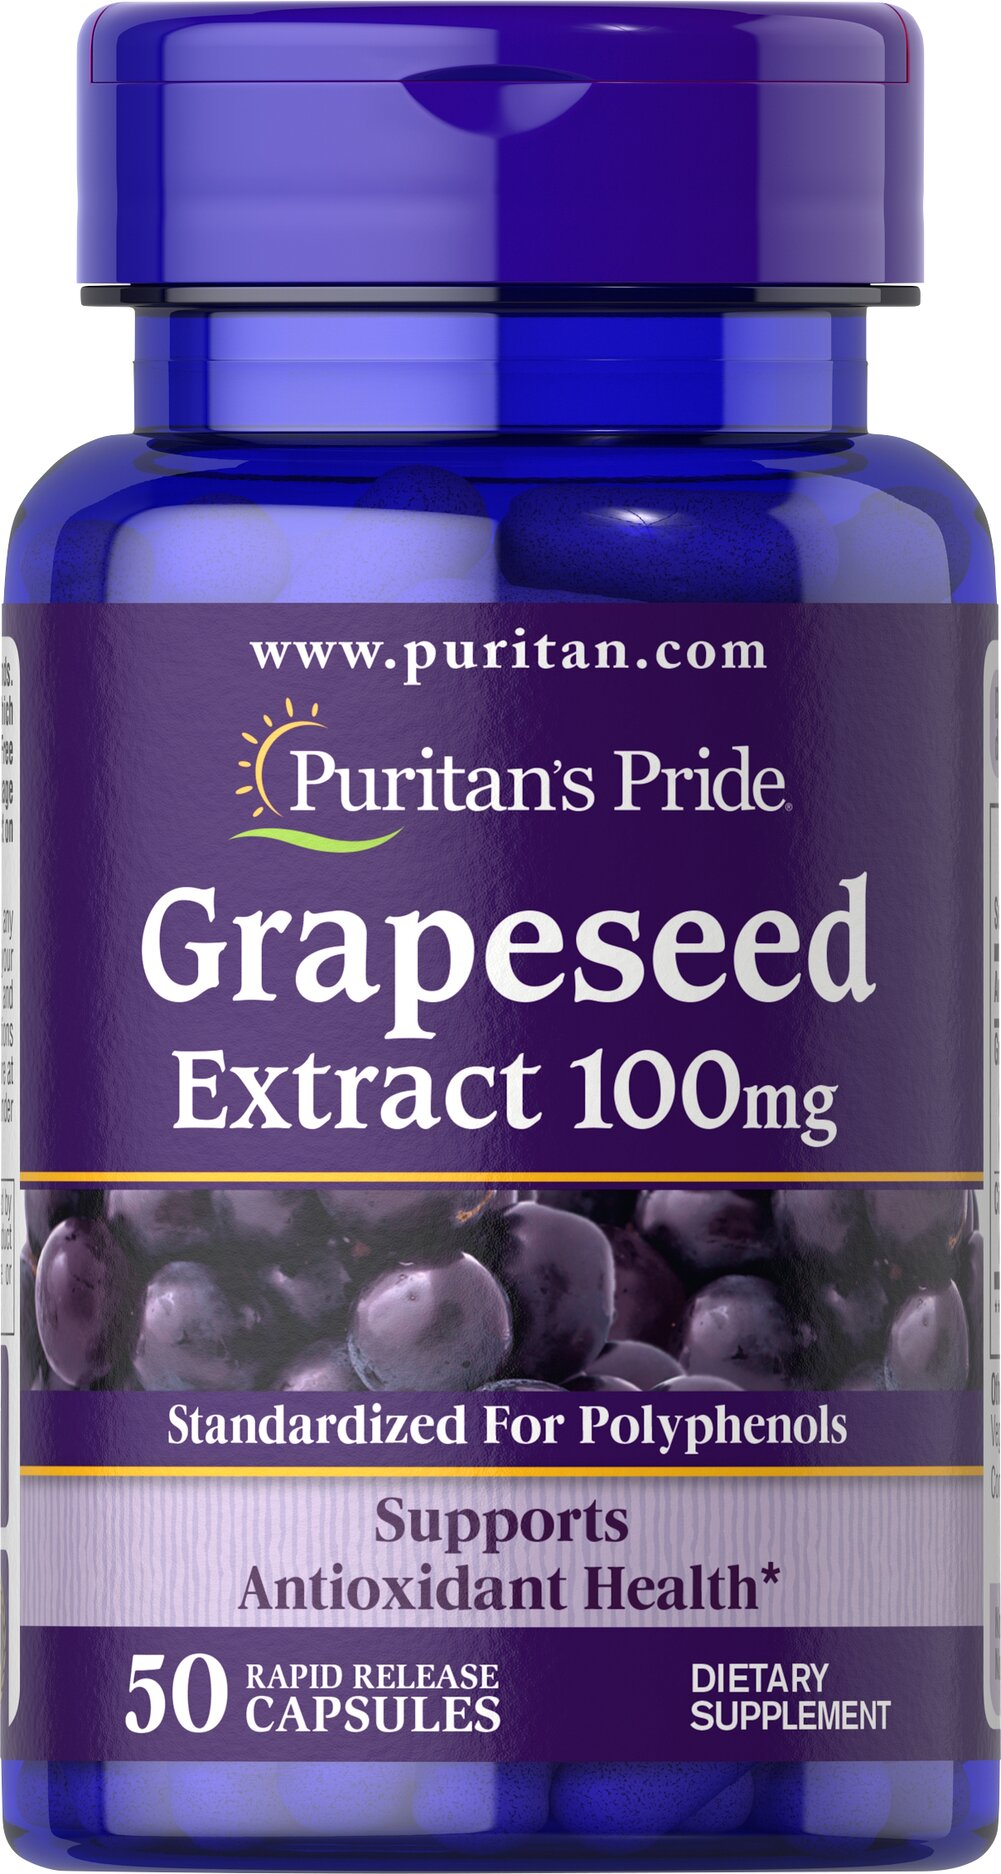 Grapeseed Extract 100 mg <p><strong>Grapeseed Extract</strong> helps maintain antioxidant health.** It contains oligomeric proanthocyanidins (OPCs), which are naturally occurring bioflavonoids. Free of yeast, wheat, sugar, preservatives, soy,  gluten, fish, artificial color, artificial flavor and sodium (less than 5 mg per serving). Standardized to contain 50% Polyphenols. Adults can take one capsule one or two times daily.</p> 50 Capsules 100 mg $6.64